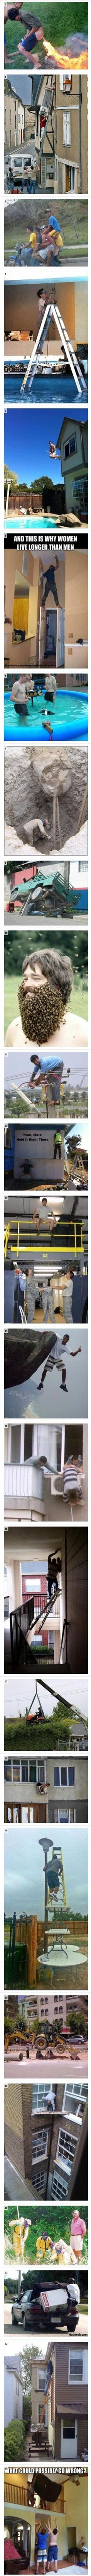 Why women live longer // funny pictures - funny photos - funny images - funny pics - funny quotes - Funny Images, Funny Photos, Funny Jokes, Hilarious, Stupid People, Live Long, Funny Pins, Man Humor, Funny Cute